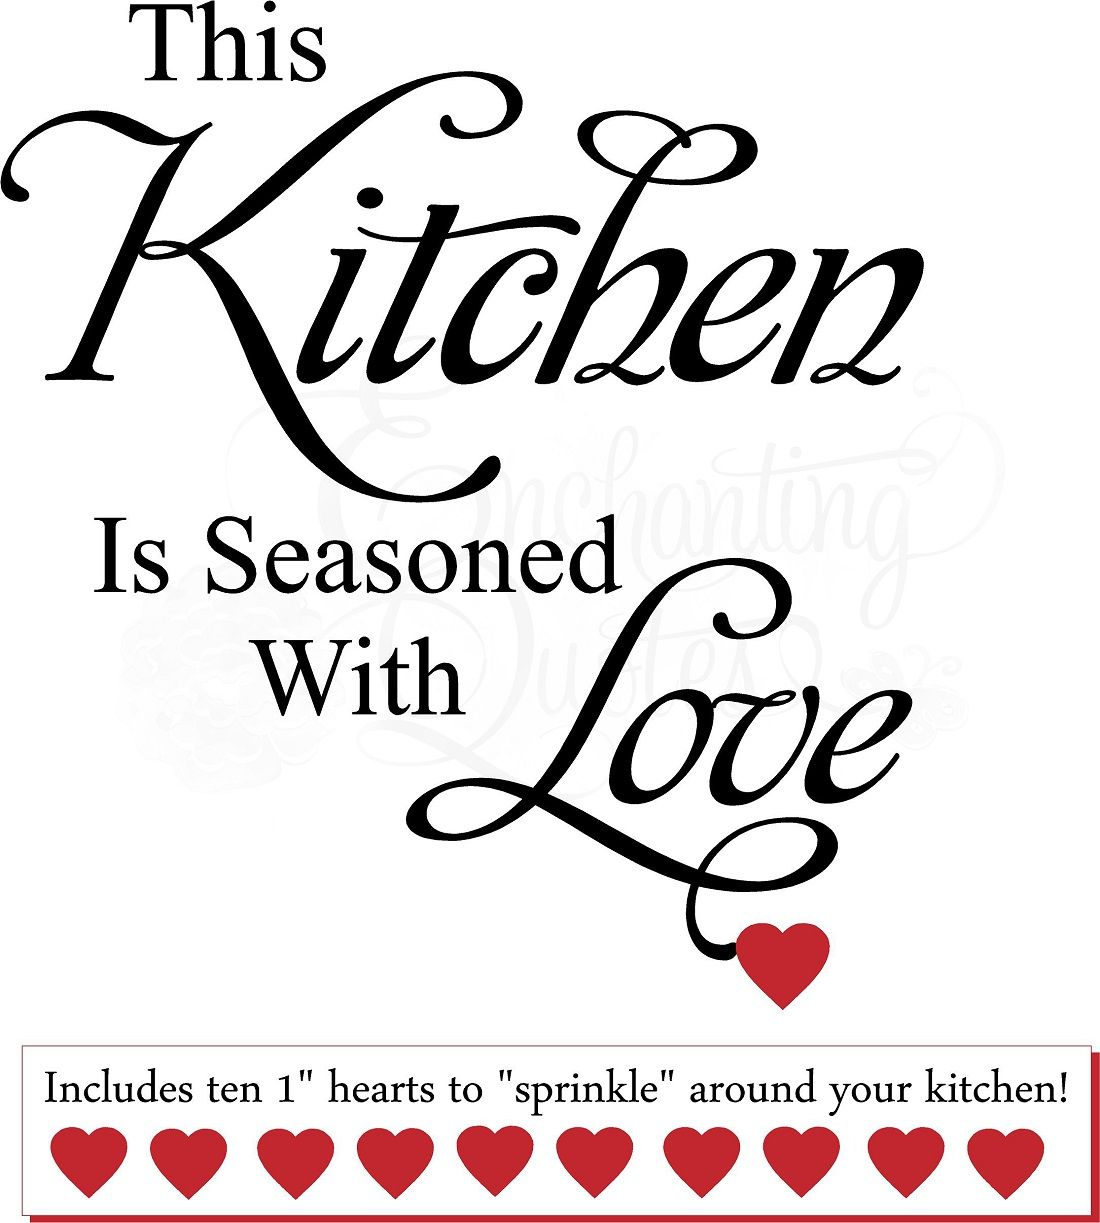 Quotes About Kitchens: This Kitchen Is Seasoned With Love